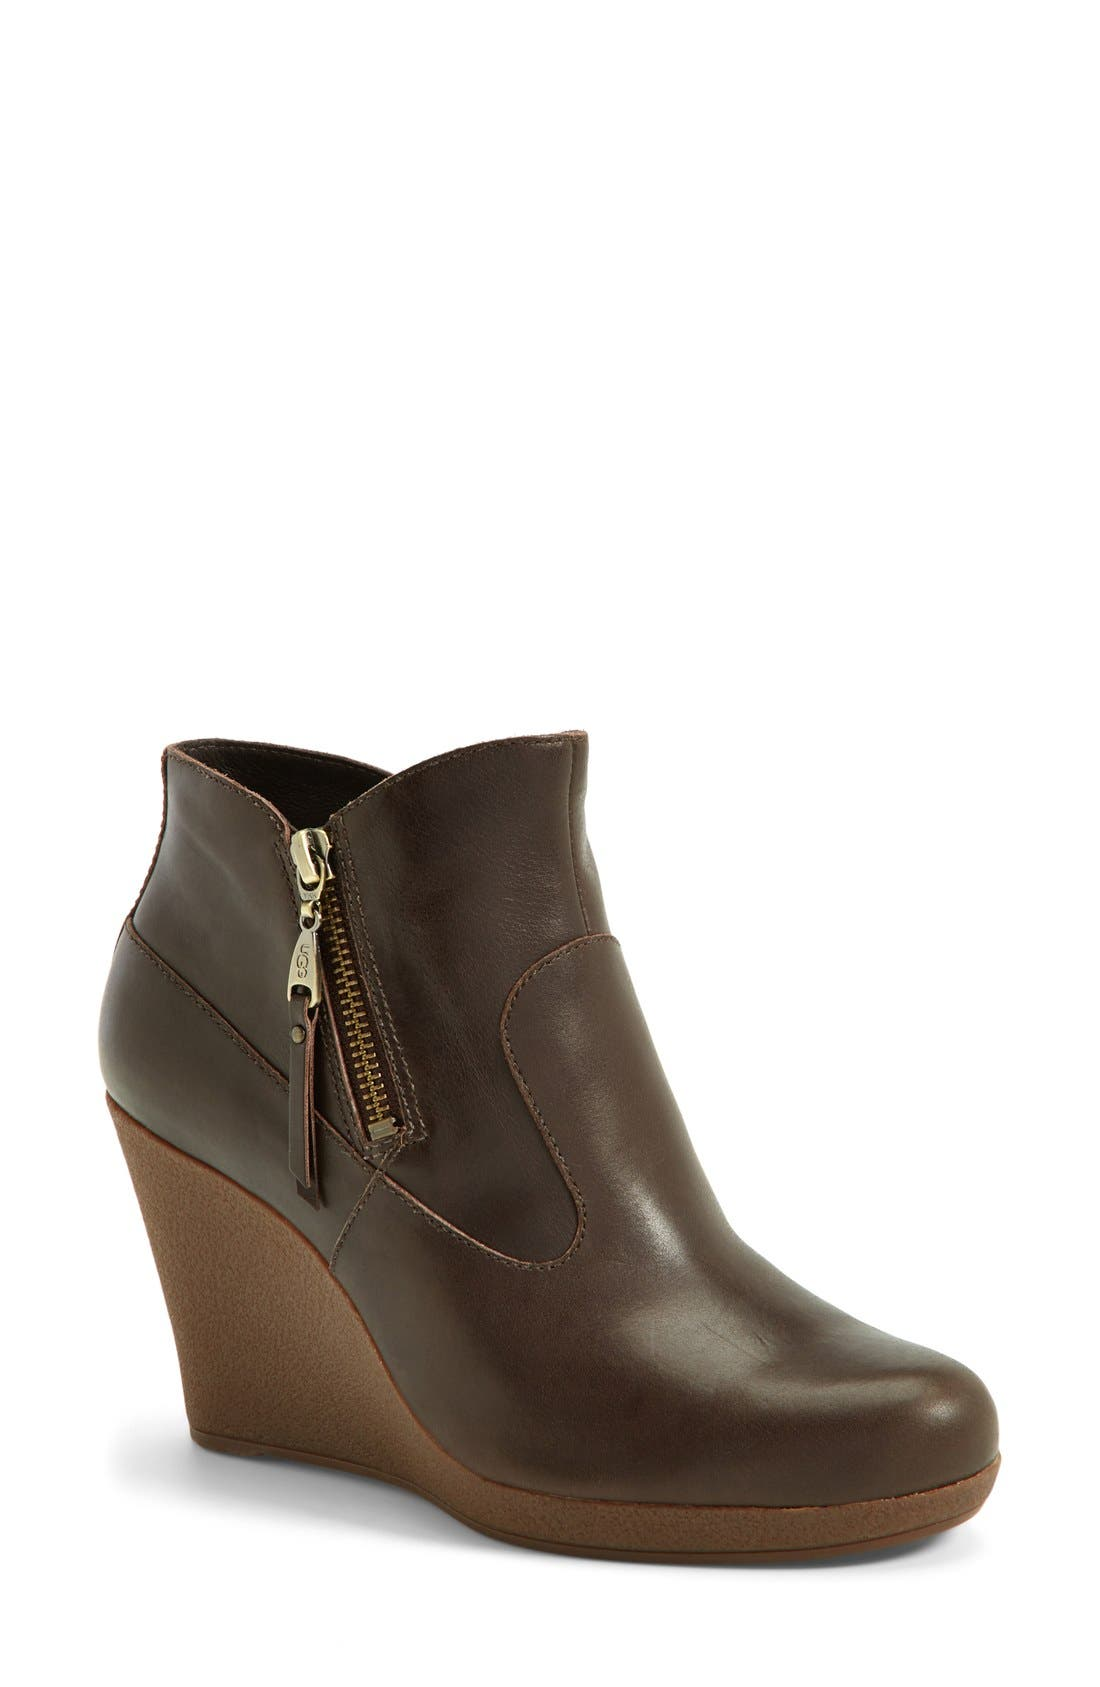 Main Image - UGG® Australia 'Meredith' Wedge Bootie (Women)